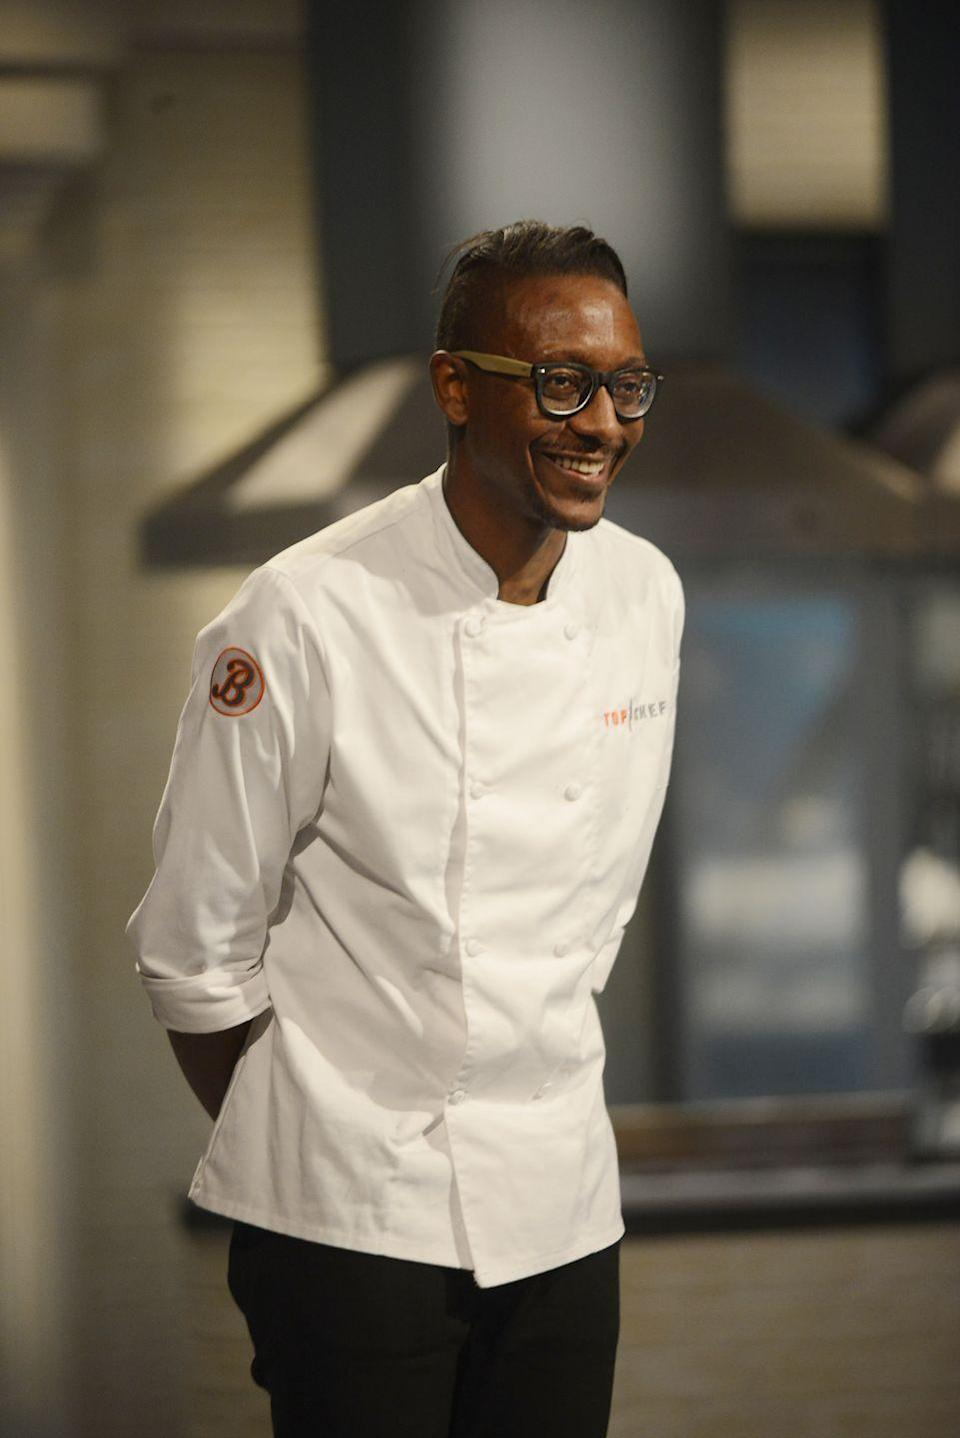 <p>Gregory Gourdet competed against fellow chefs on season 12 of <em>Top Chef</em>, where he lost out to winner Mei Lin in the final round.  </p>